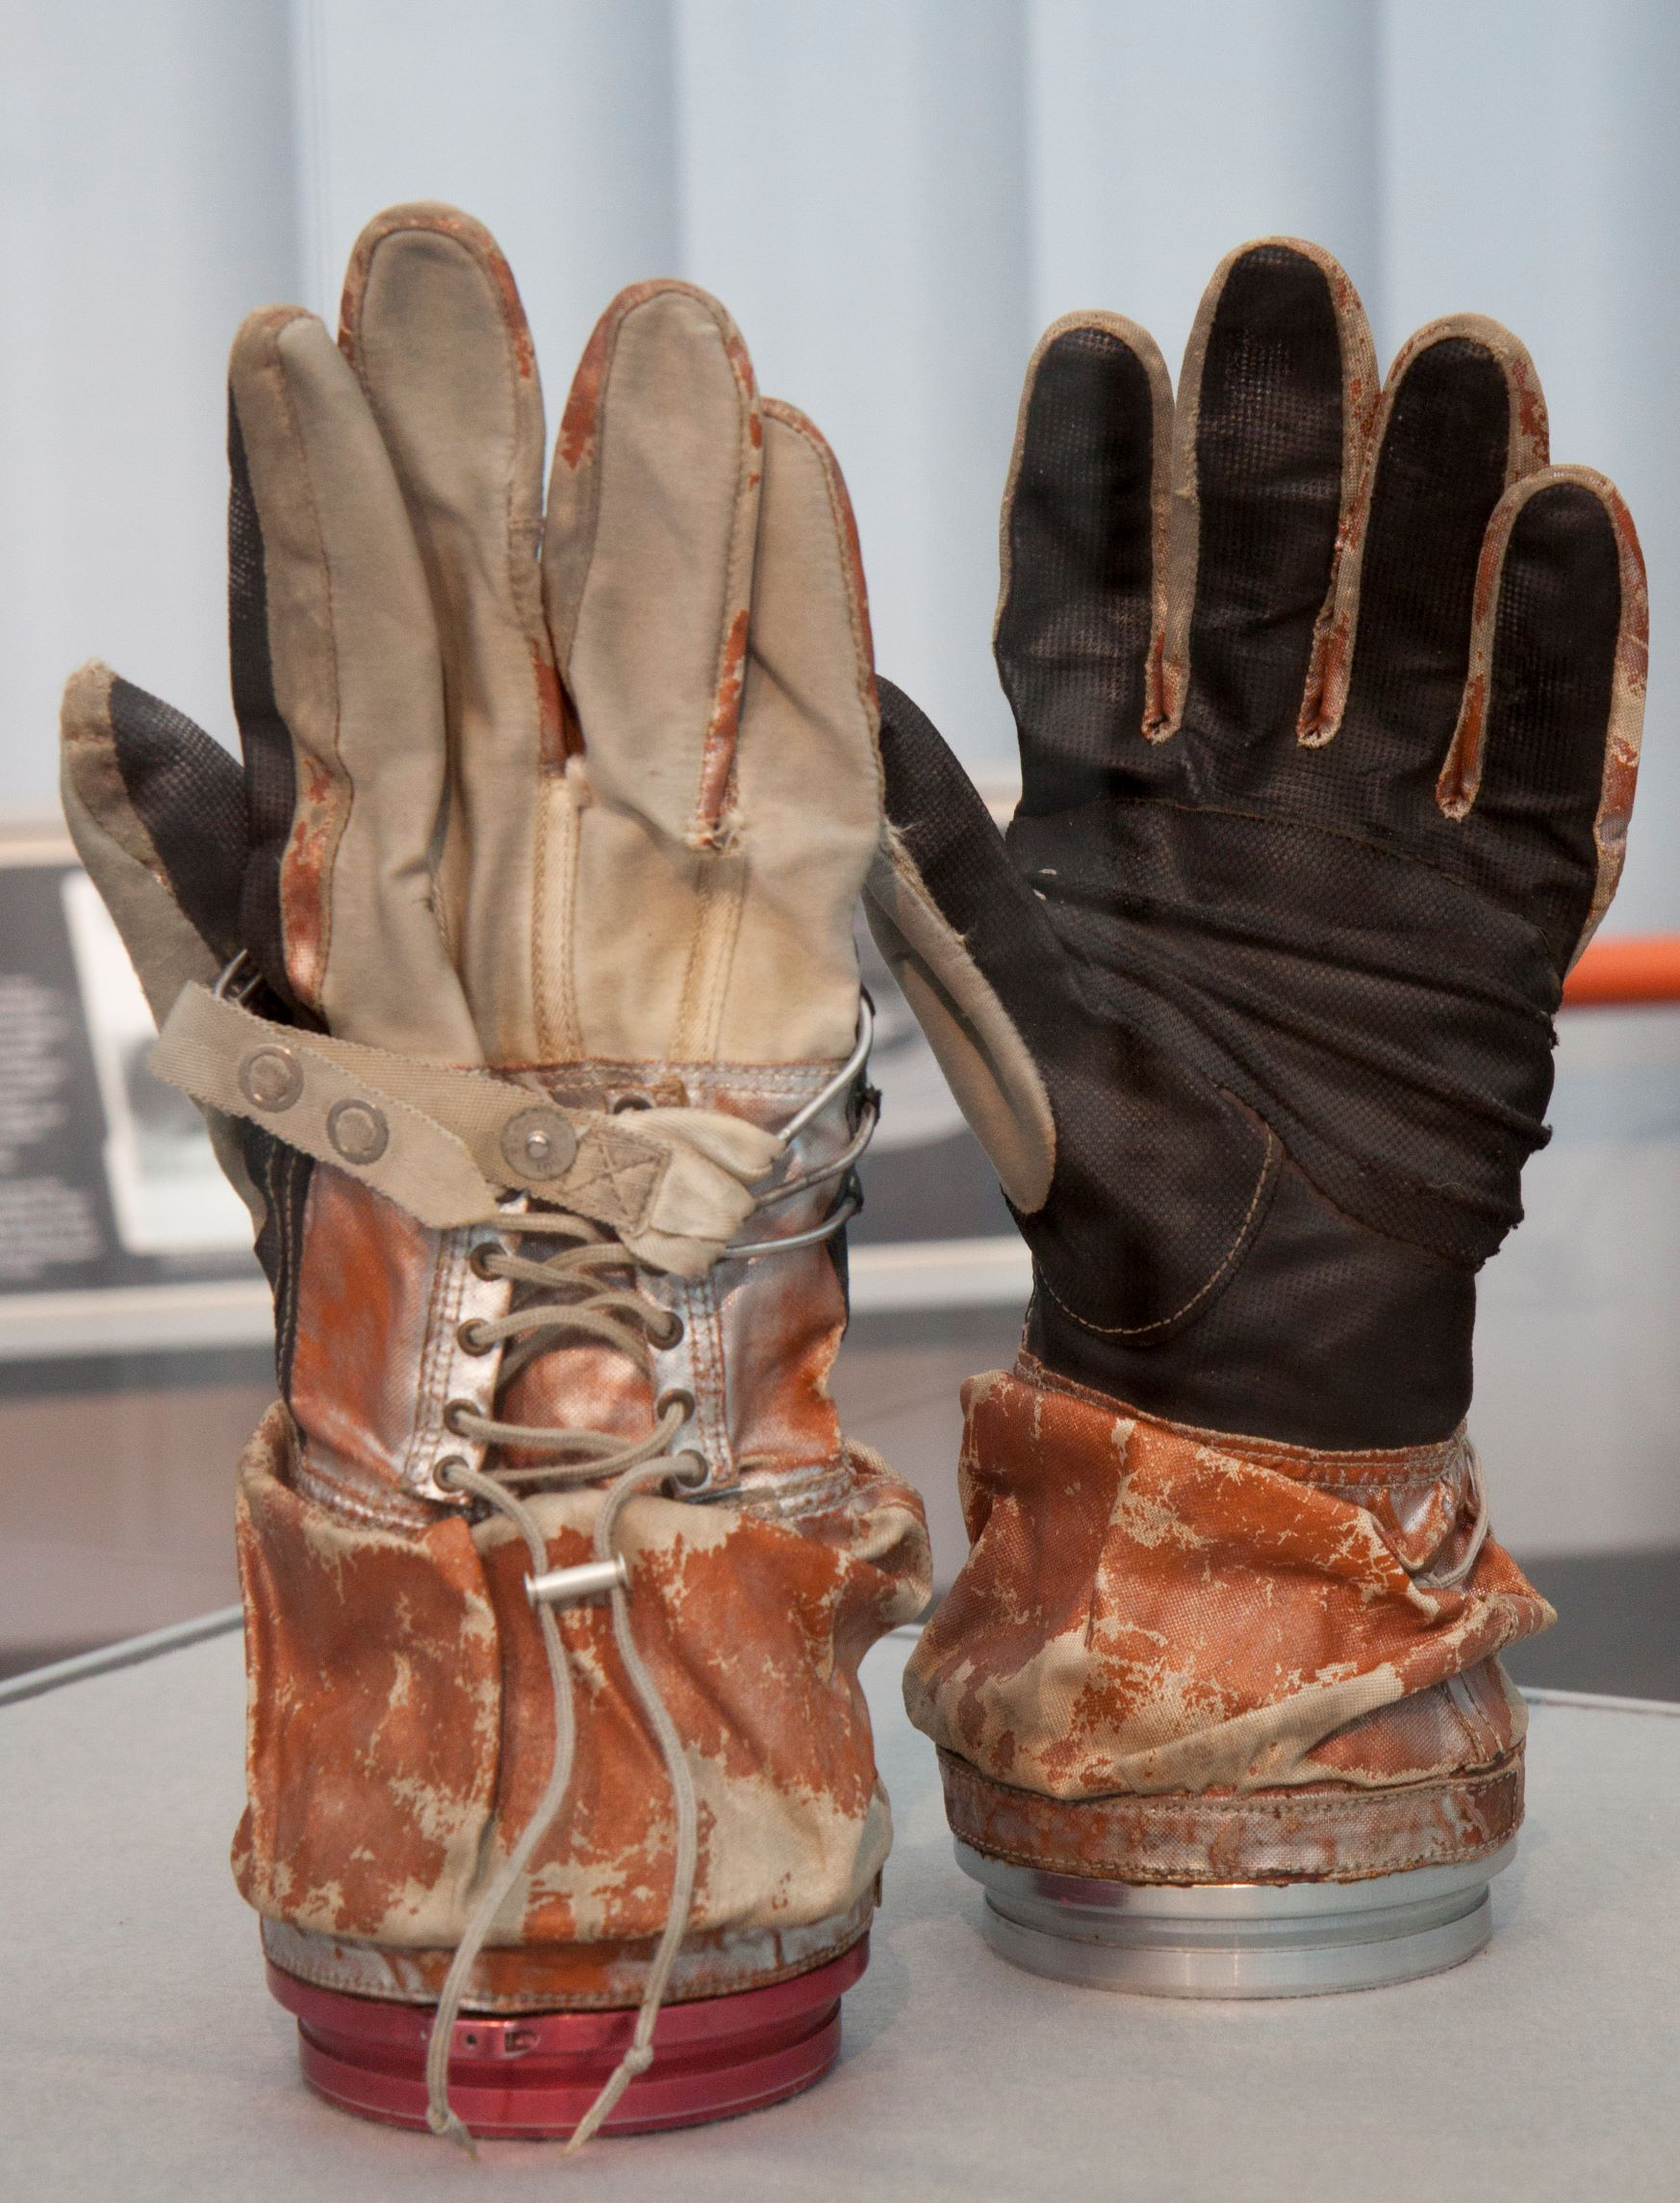 Early NASA space suit gloves